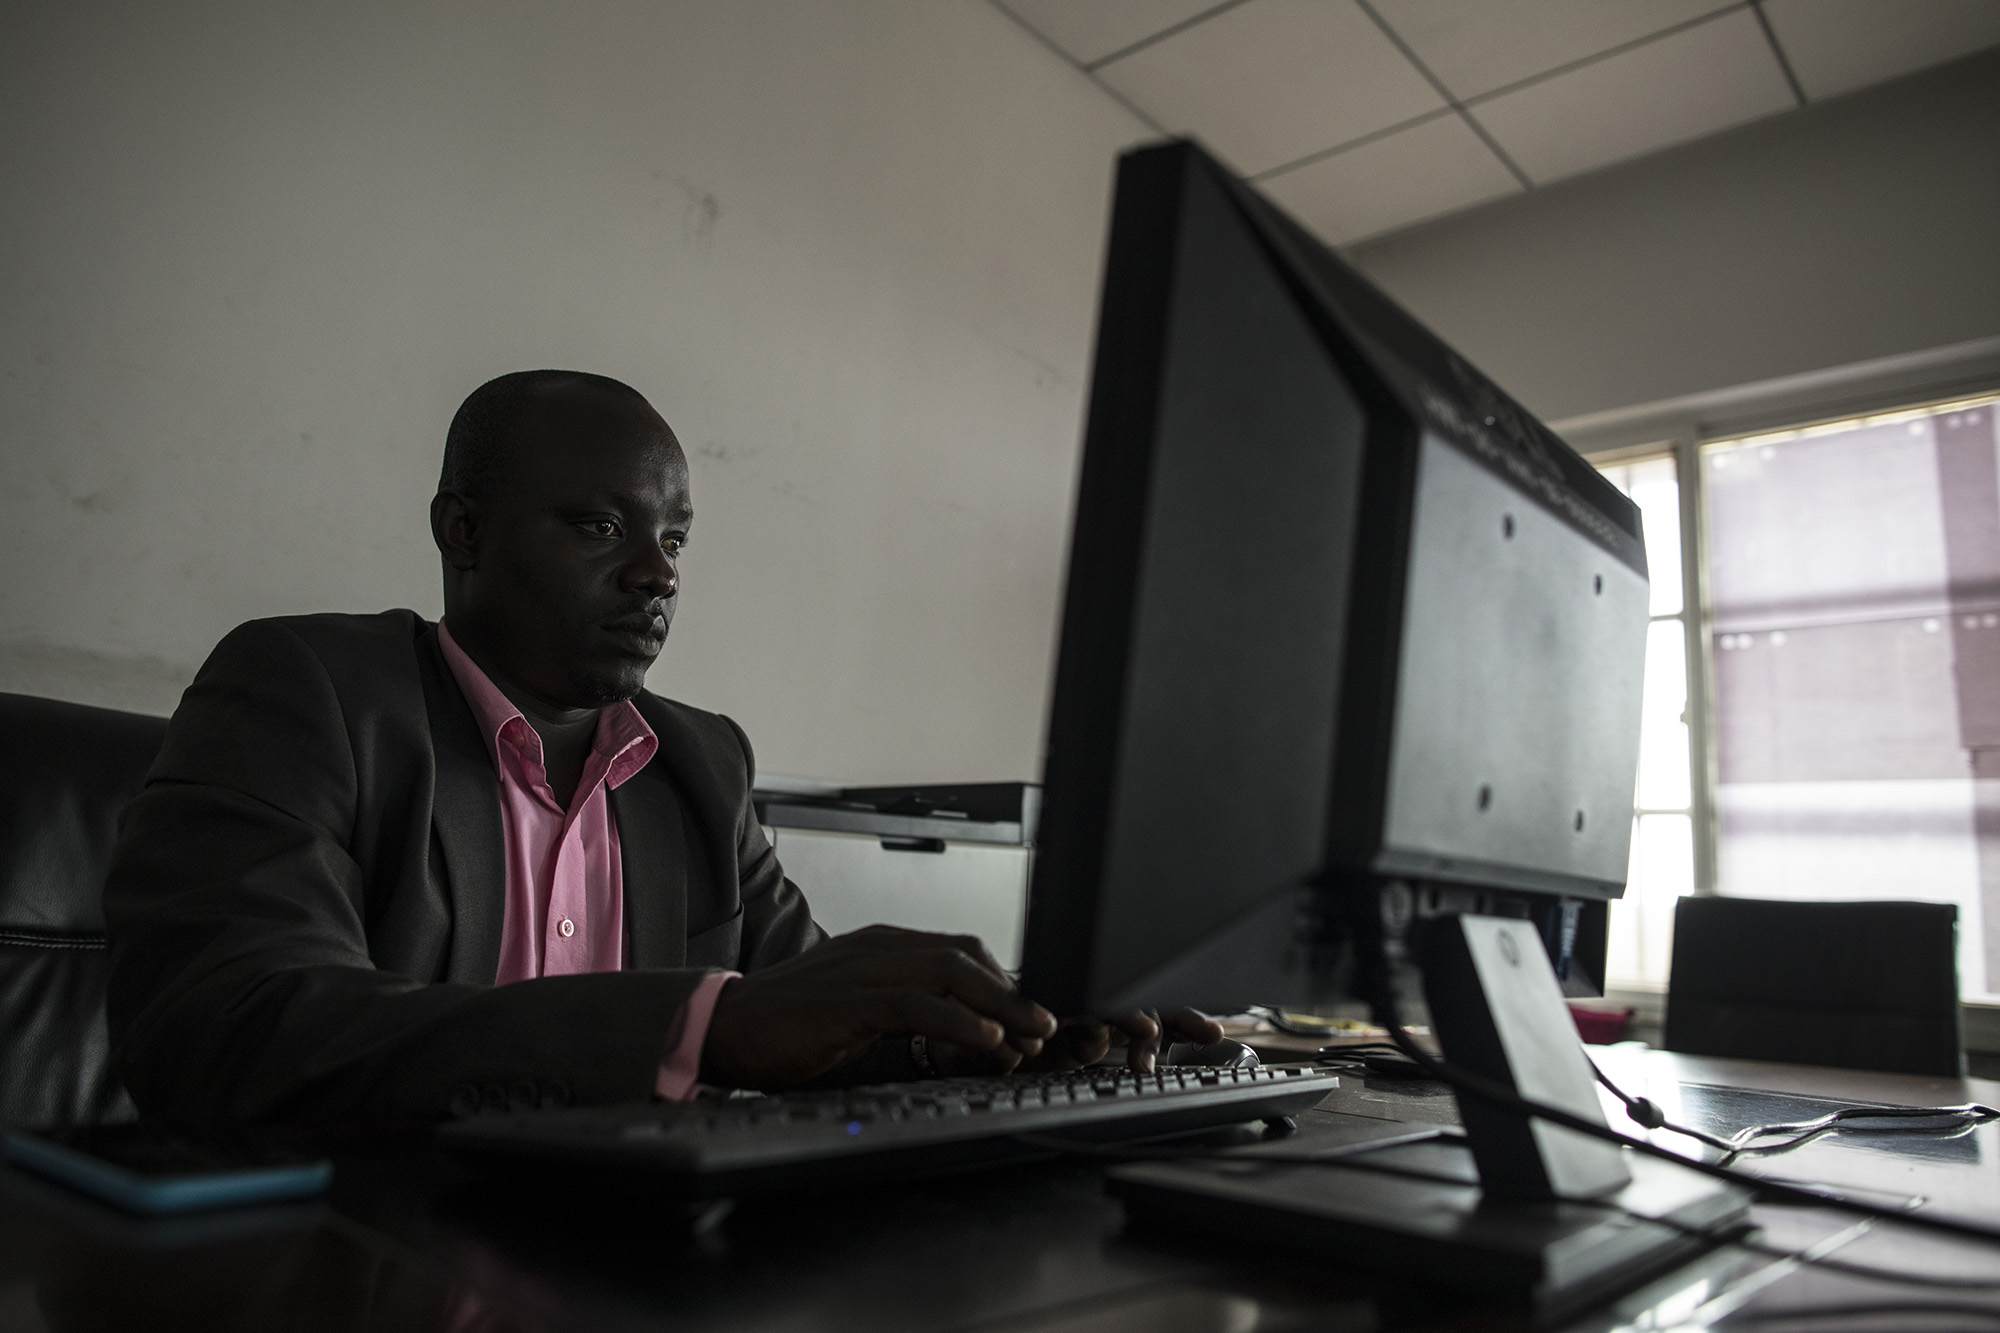 MONROVIA, LIBERIA: August 23, 2017 -  During the Ebola outbreak that started in 2014 there was no centralized system for the Ministry of Health to communicate to all healthcare workers across the country at the same time. UNICEF and USAID teamed up to create a platform that utilized mobile phones to facilitate a two way communication system between healthcare workers and the centralized ministry. Now healthcare workers receive text messages on their phones with vital information when there is a health emergency. They can also use their phones to send important information like the status of supply stocks in the clinic. Photo by Sarah Grile.